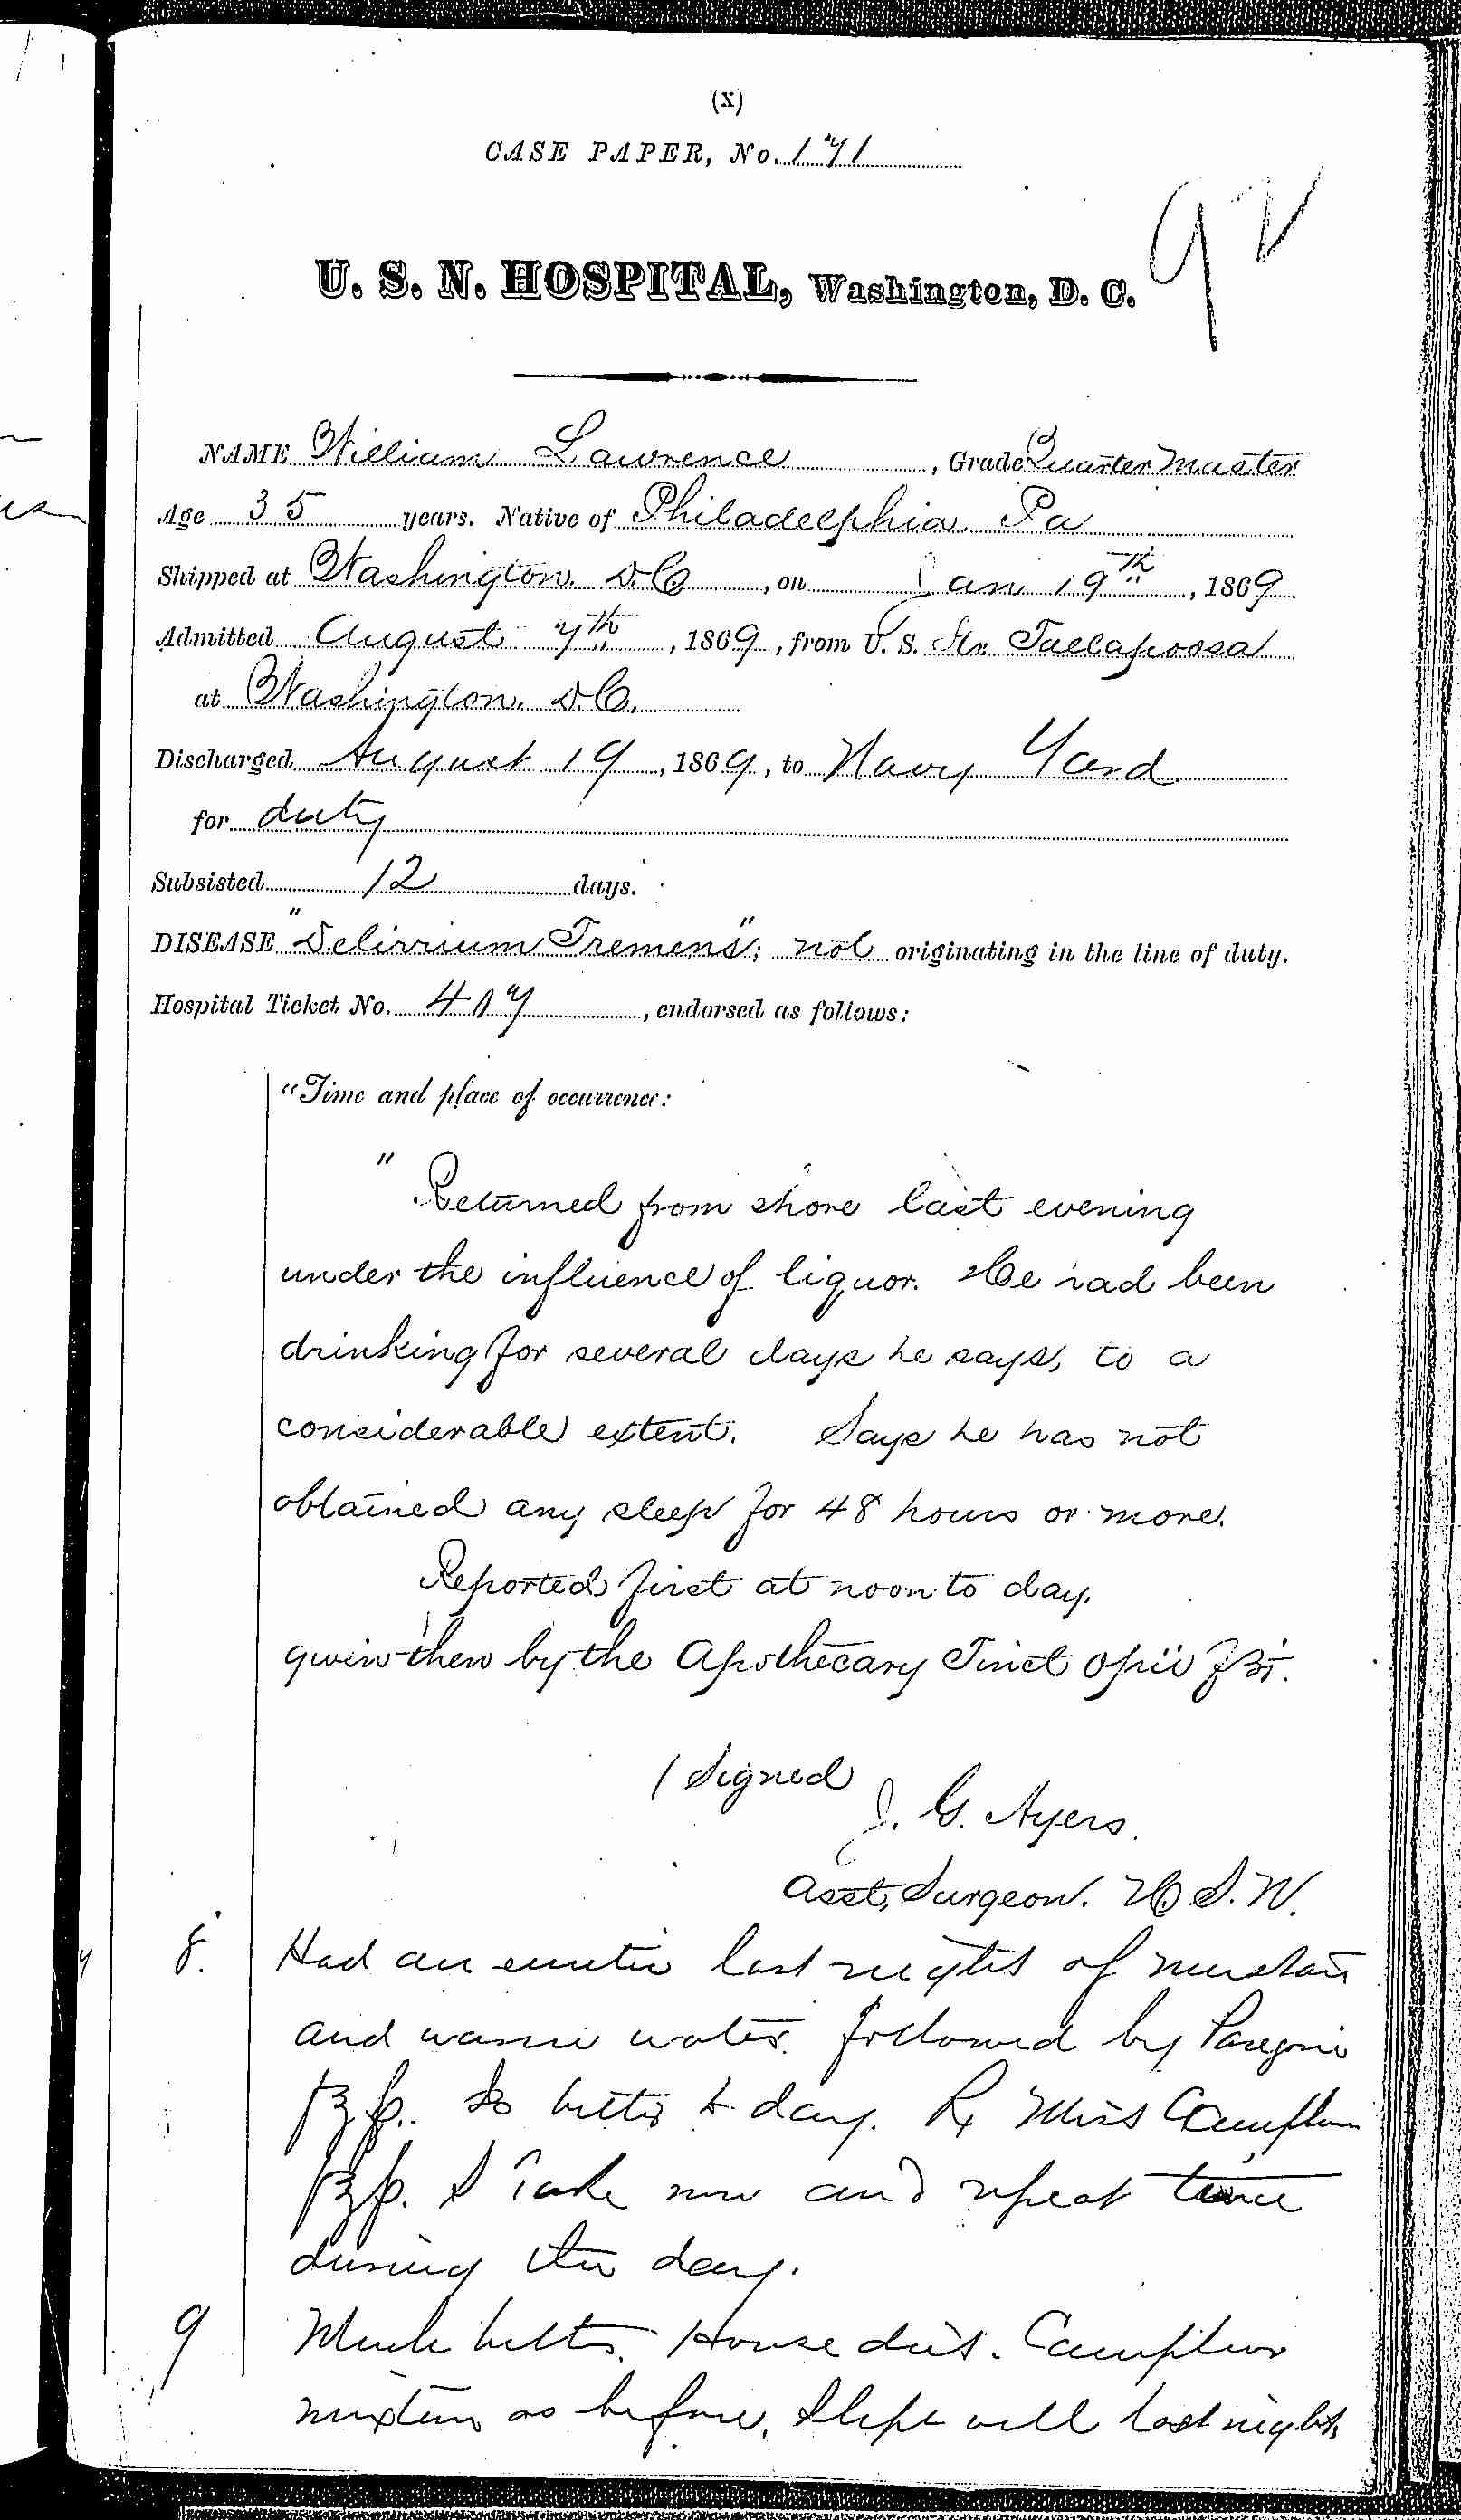 Entry for William Laurence (page 1 of 2) in the log Hospital Tickets and Case Papers - Naval Hospital - Washington, D.C. - 1868-69